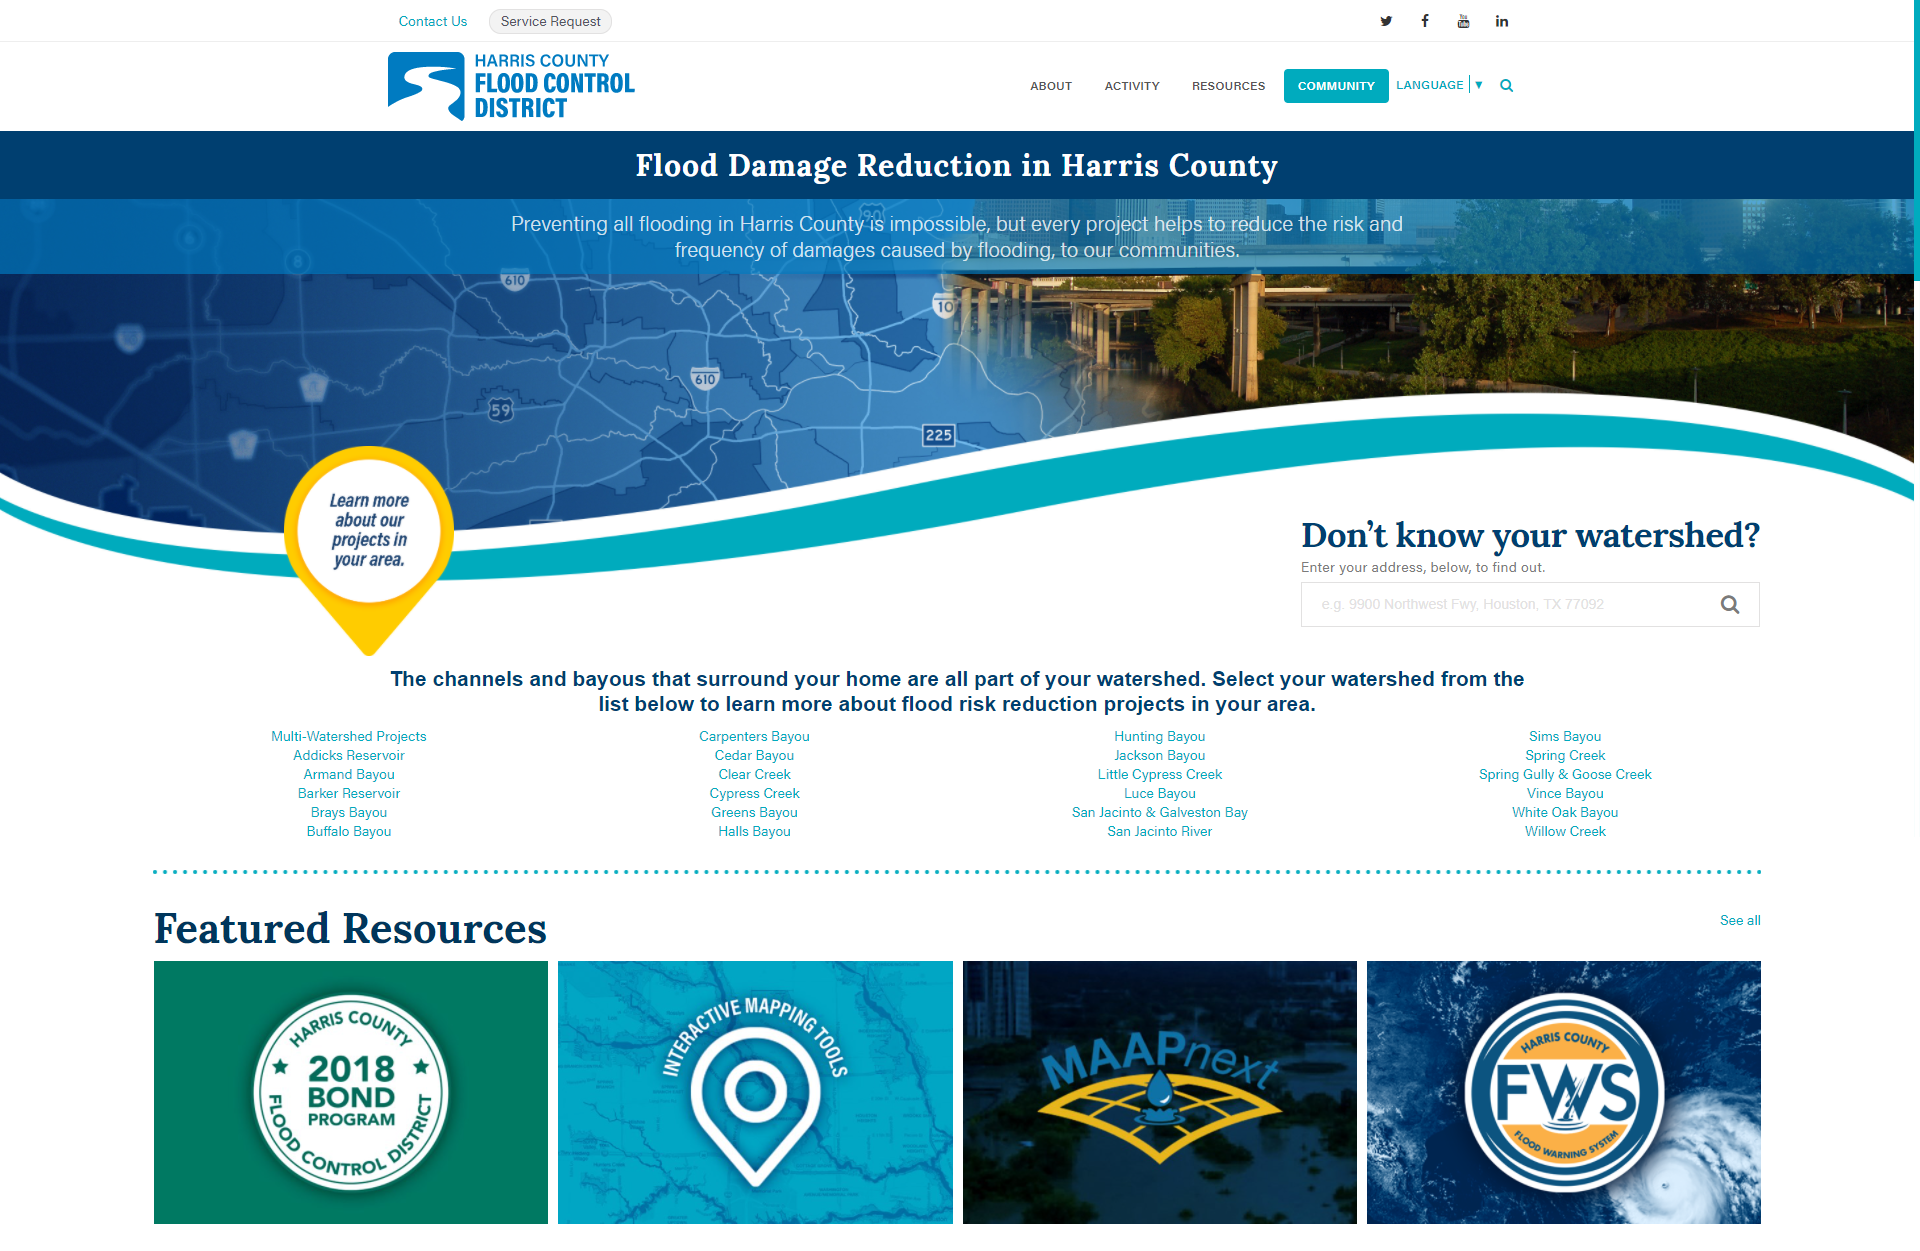 Flood Control District Website Gets a Fresh Look